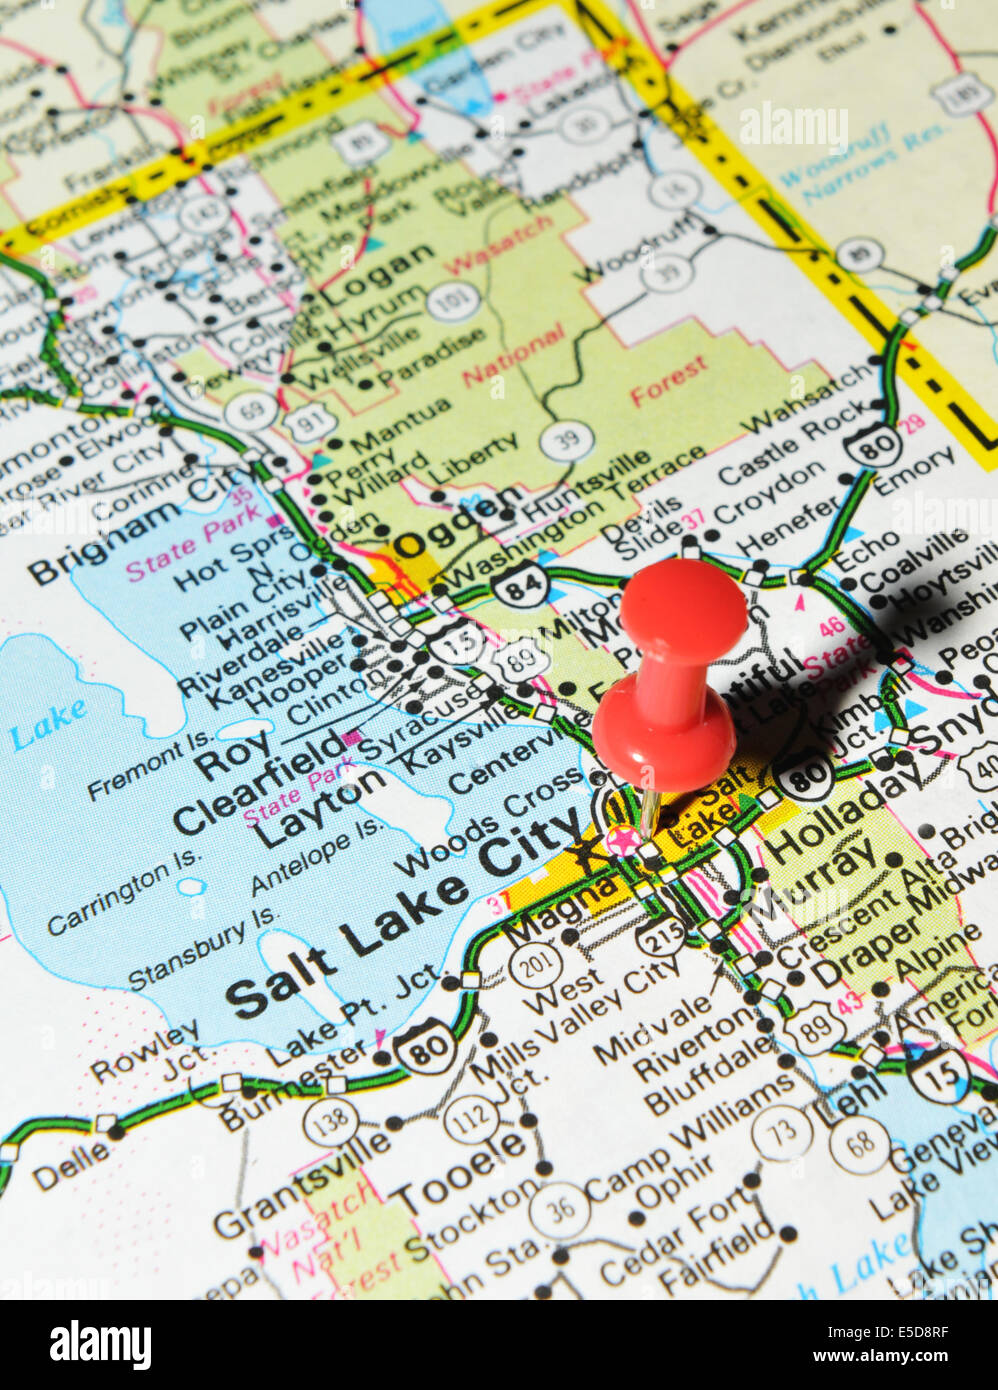 Salt Lake City On Us Map.Salt Lake City On Us Map Stock Photo 72207059 Alamy